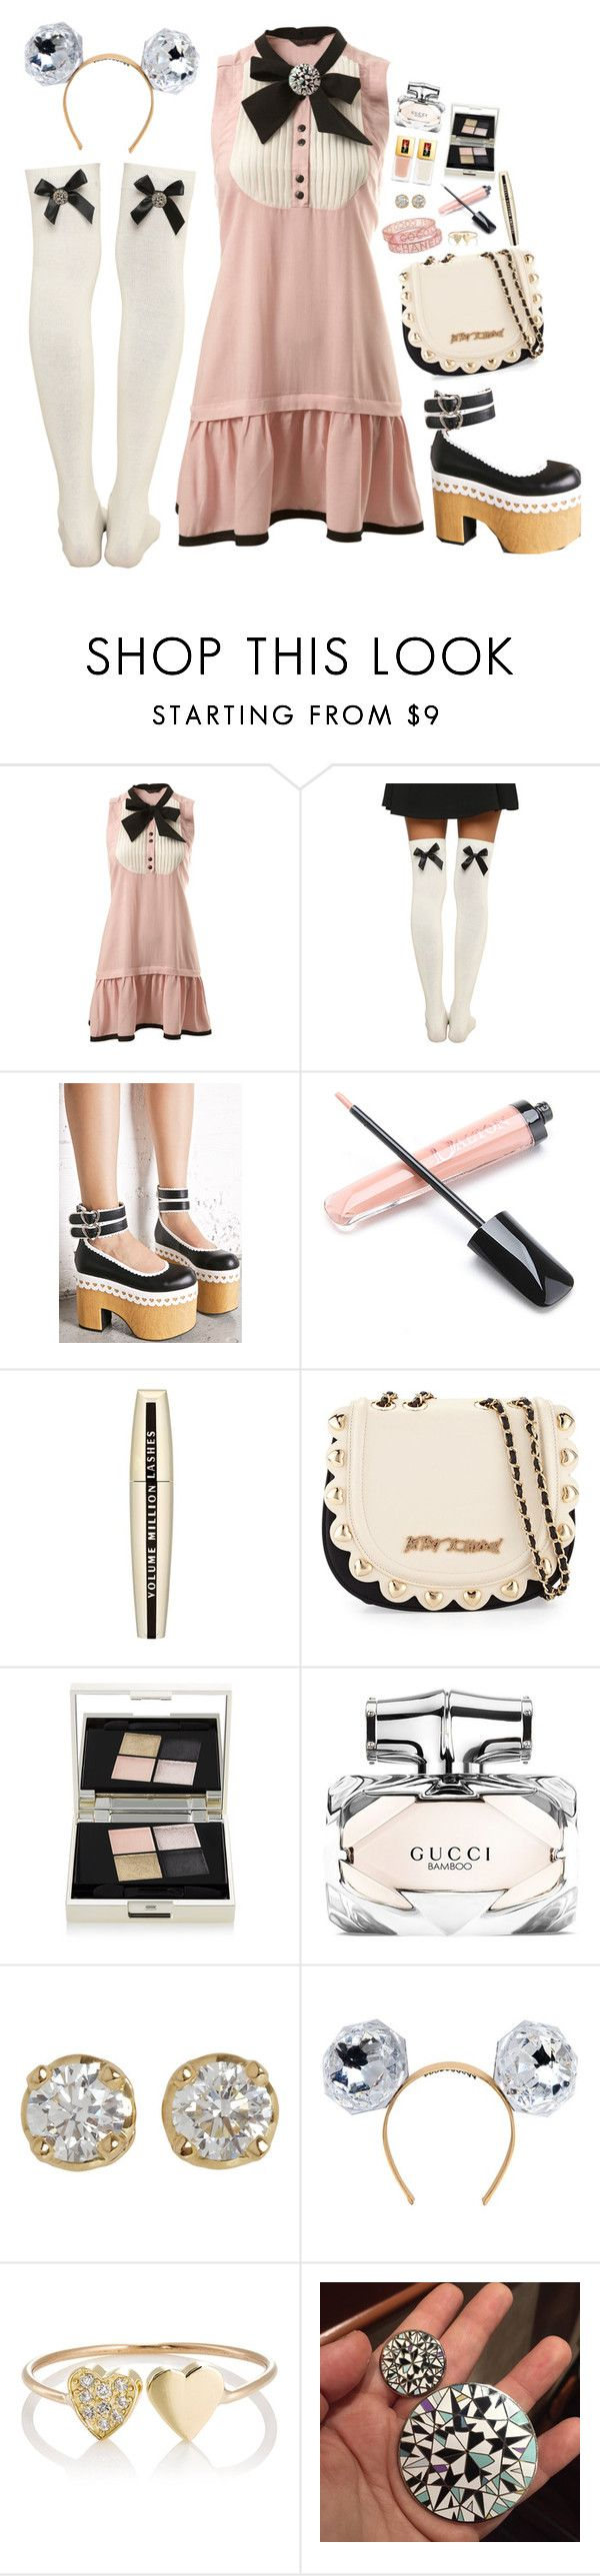 """""""-"""" by m-bot ❤ liked on Polyvore featuring Miss Selfridge, Sugarbaby, Yves Saint Laurent, L'Oréal Paris, Betsey Johnson, Smith & Cult, Gucci, Hoorsenbuhs, Piers Atkinson and Jennifer Meyer Jewelry"""